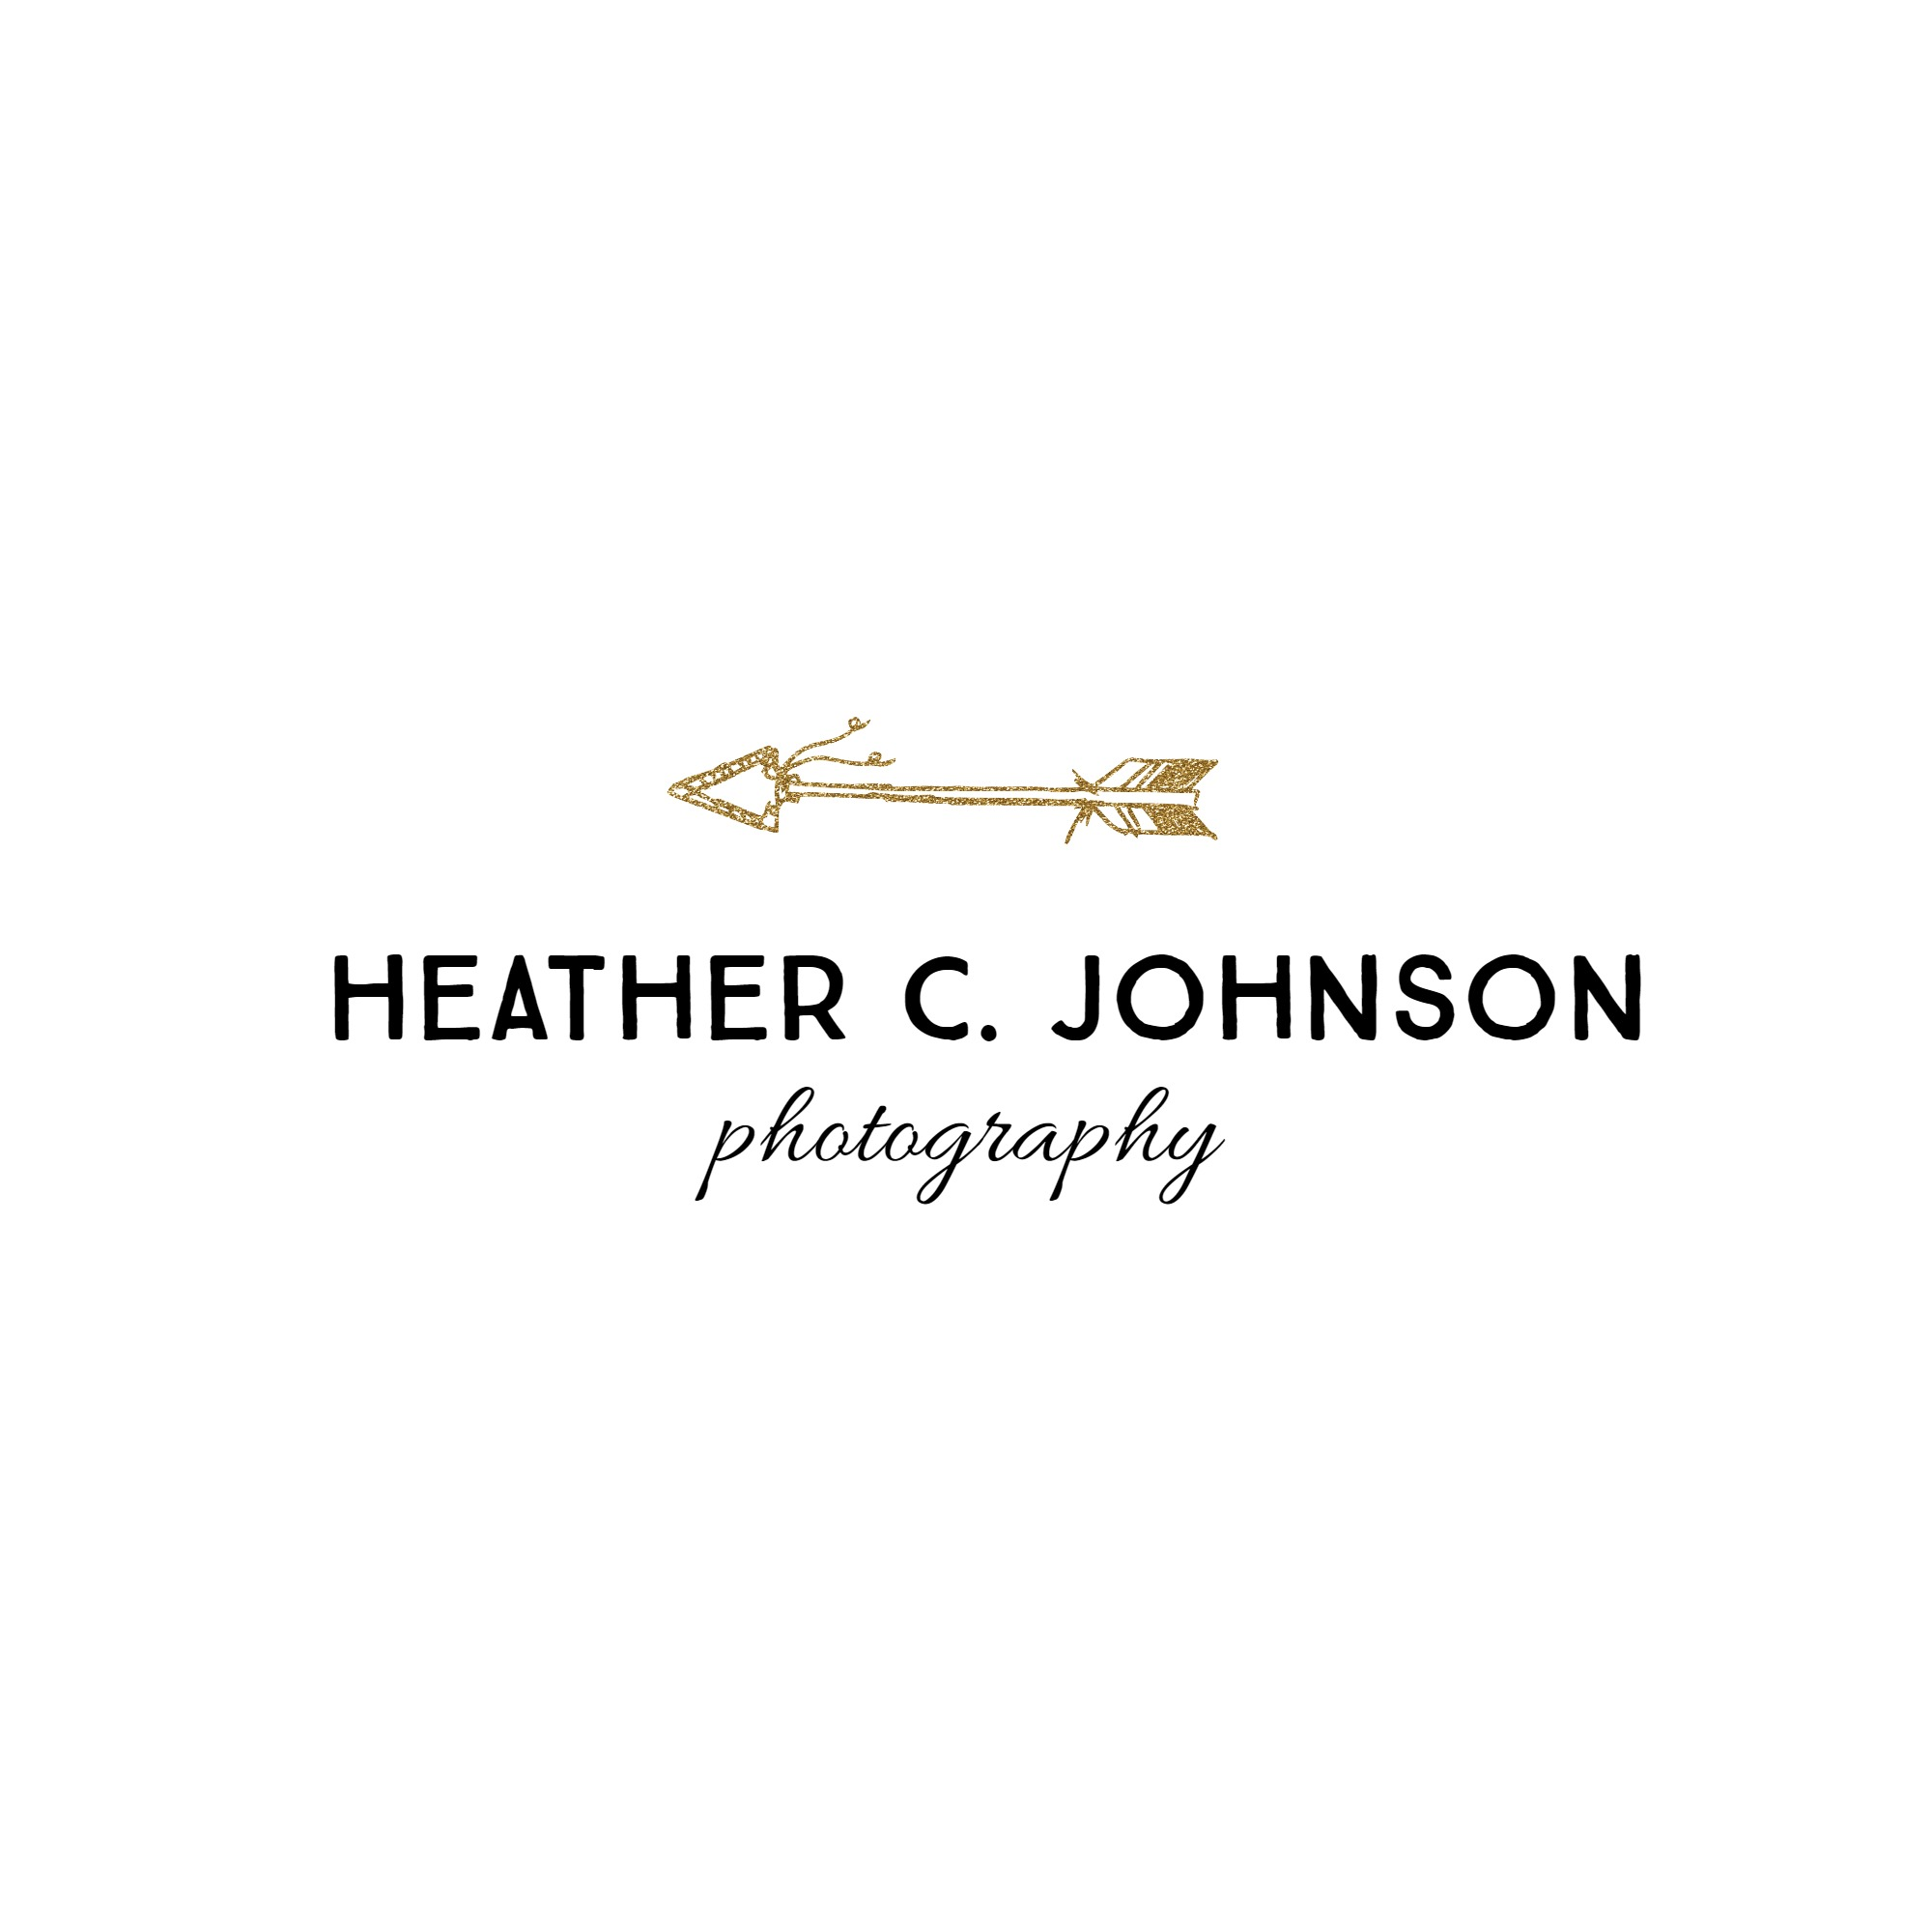 Heather C. Johnson Photography